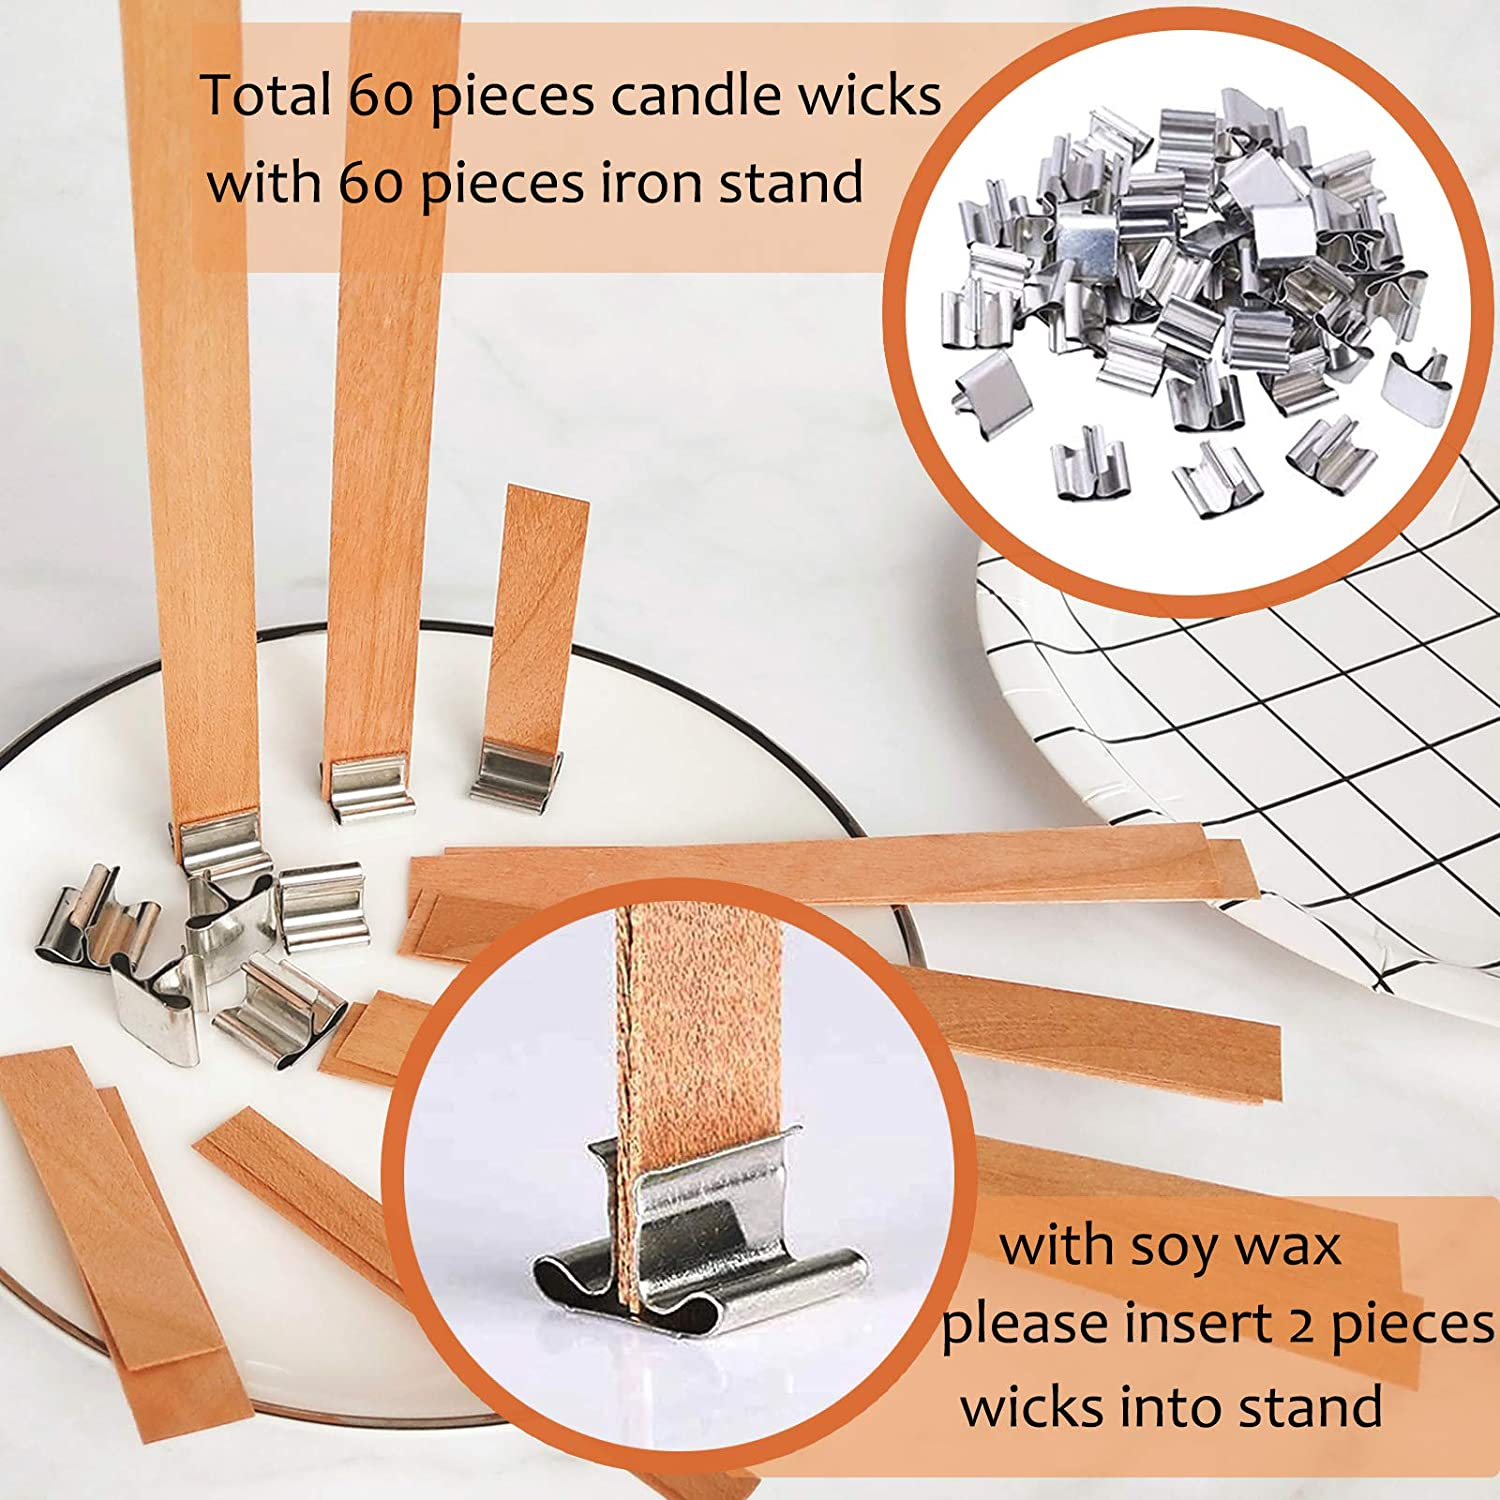 Thick Wooden Candle Wick Cores with Iron Stands 6 Size 60 PCS Wooden Candle Wicks Environmental Smokeless Candle Wicks for DIY Candle Making Craft Handmade Candle